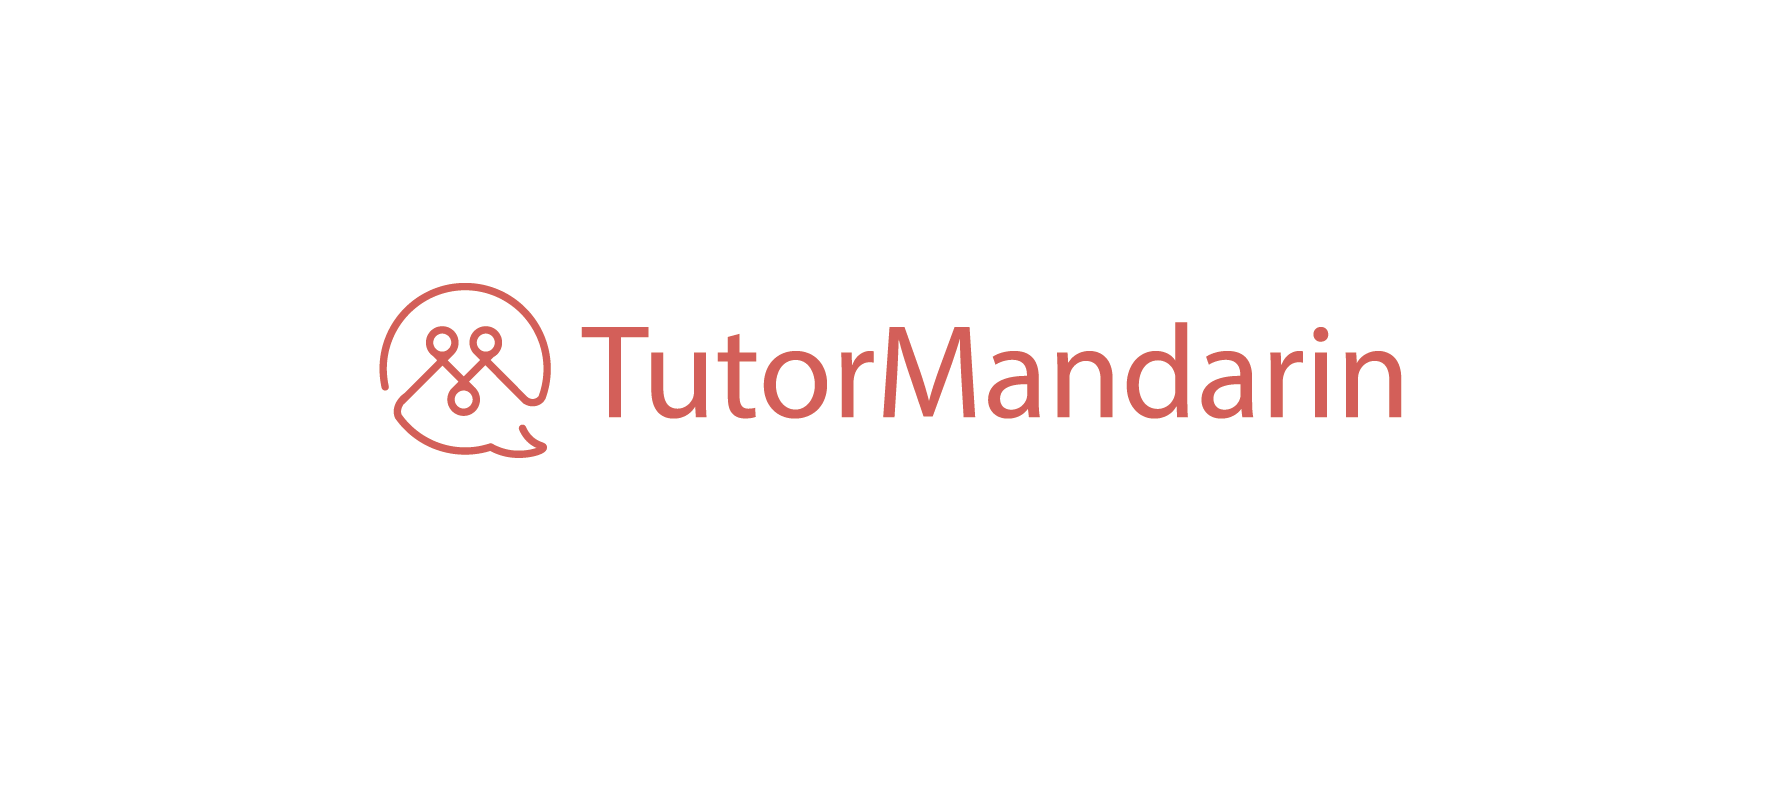 TutorMandarin Press Kit - Regular Logo red